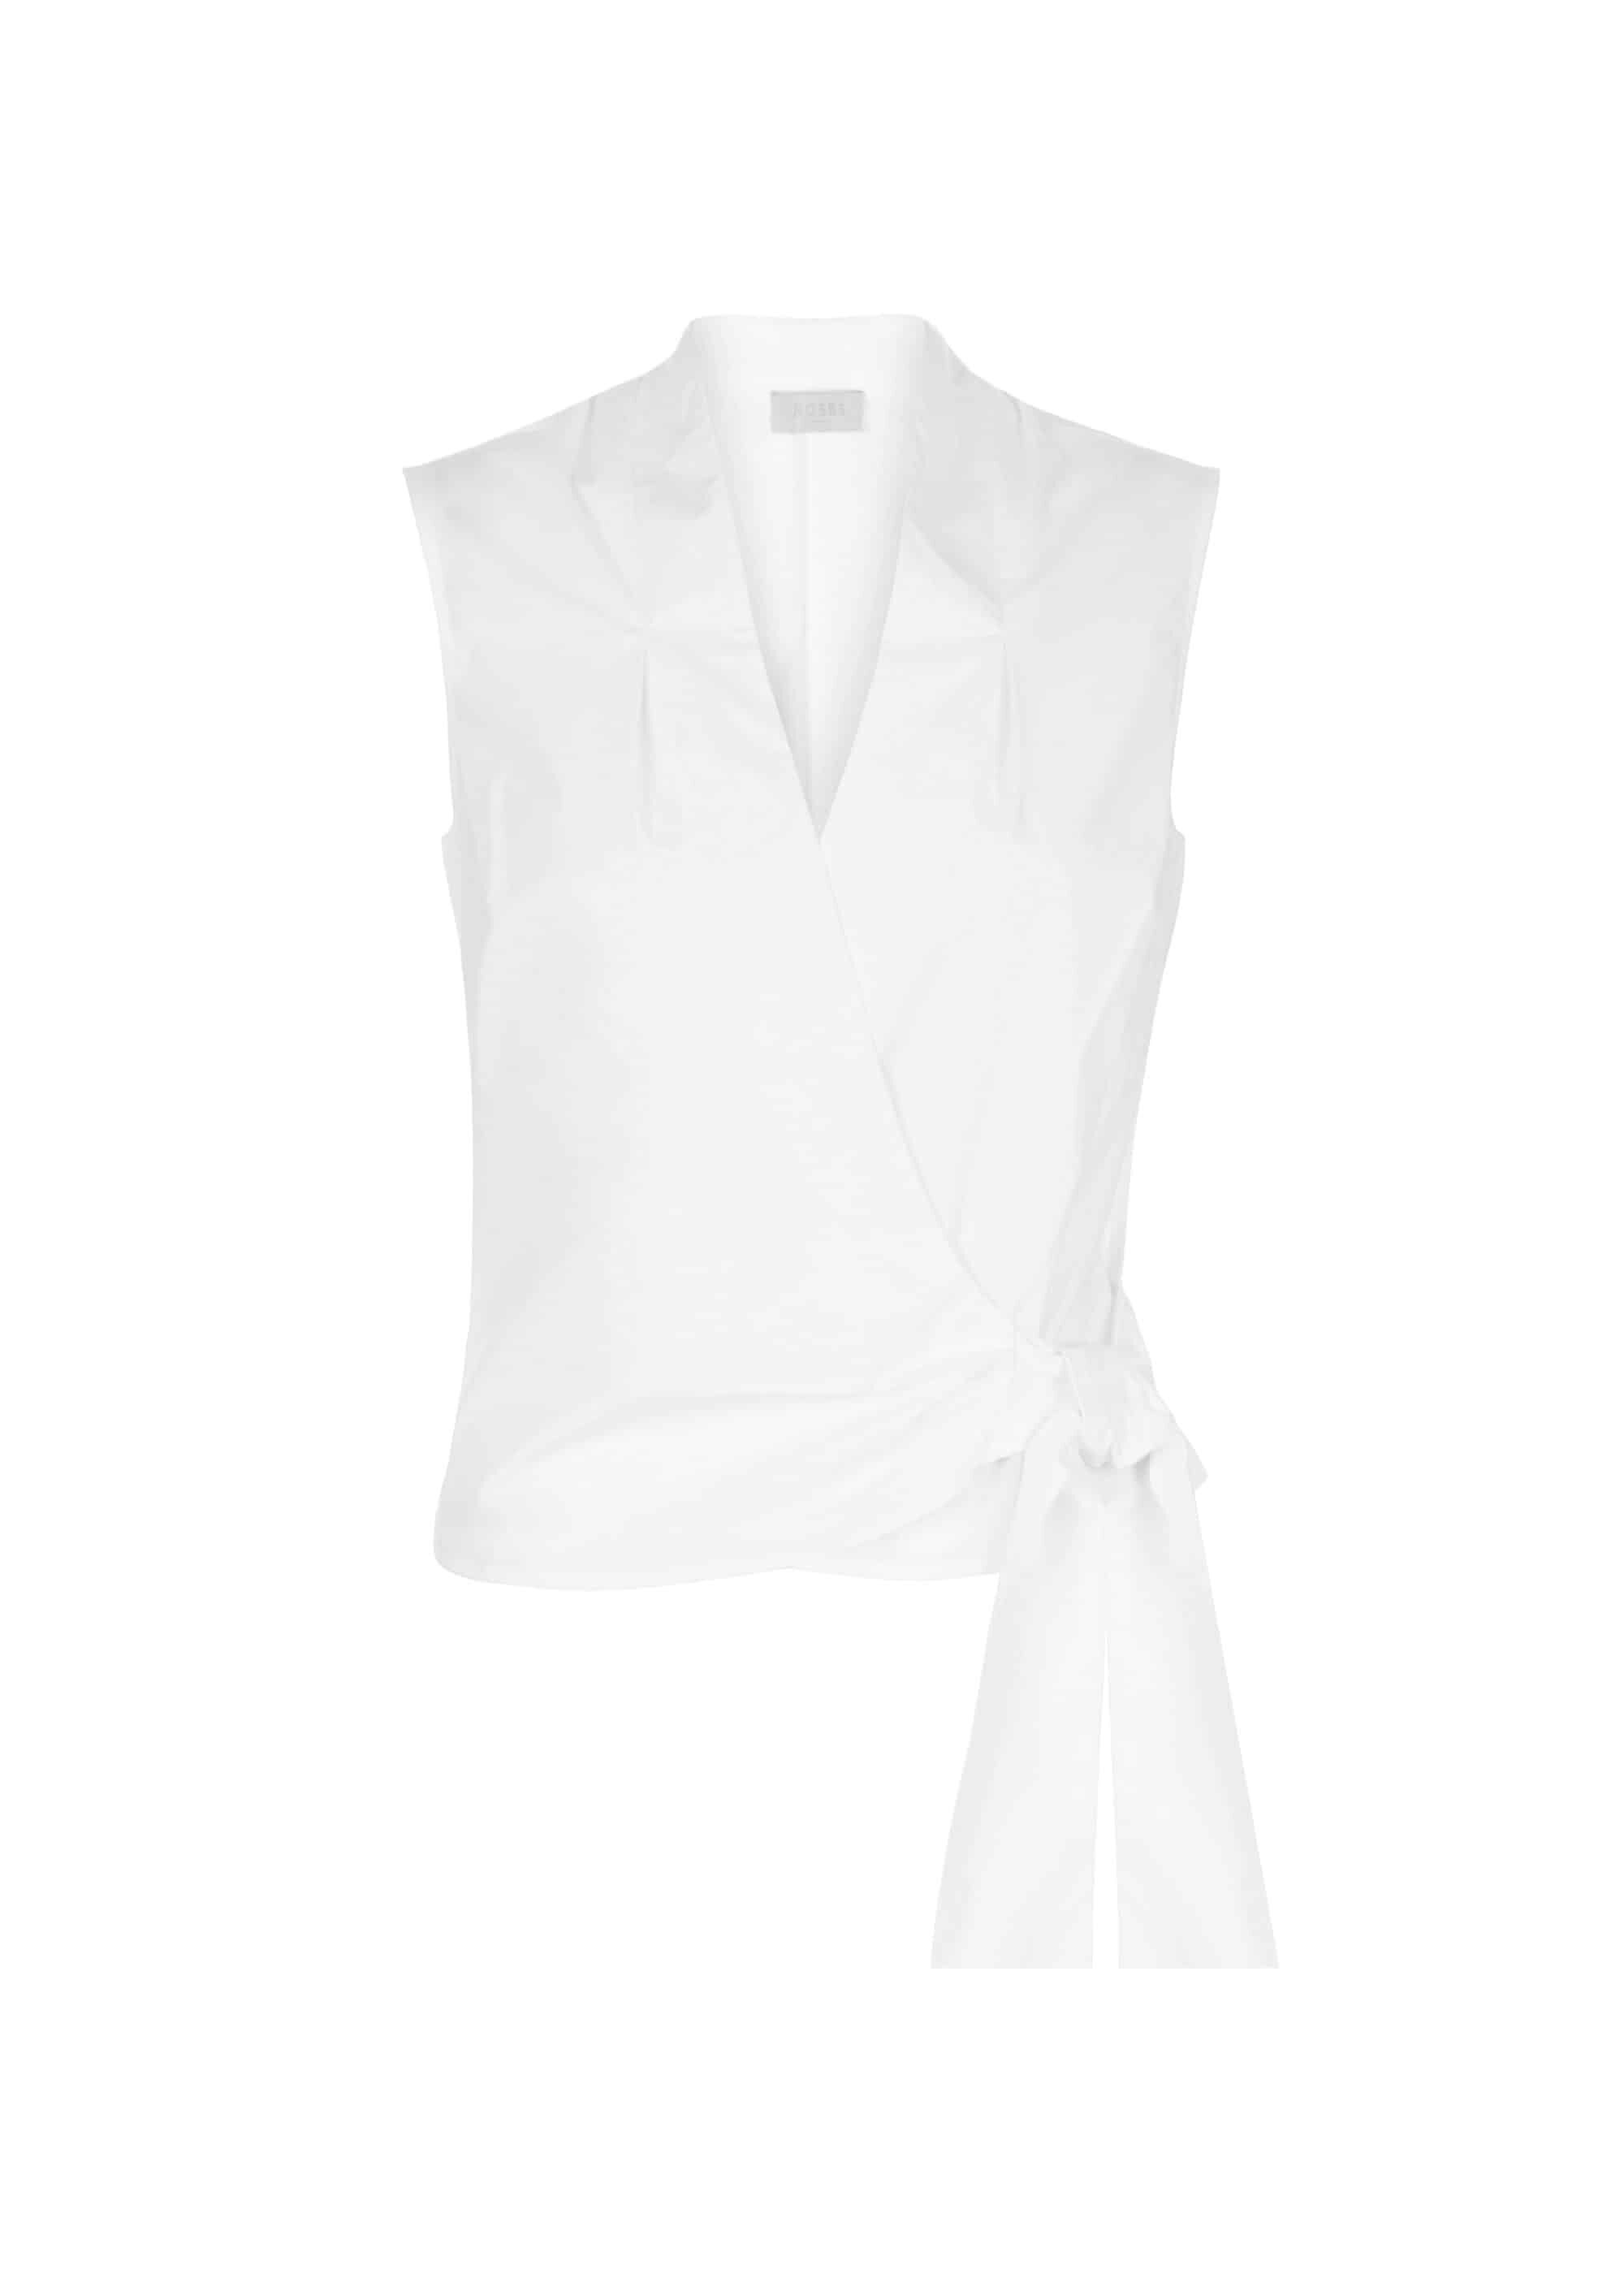 RRP £25. Hobbs Ava White Cami Top Various Sizes